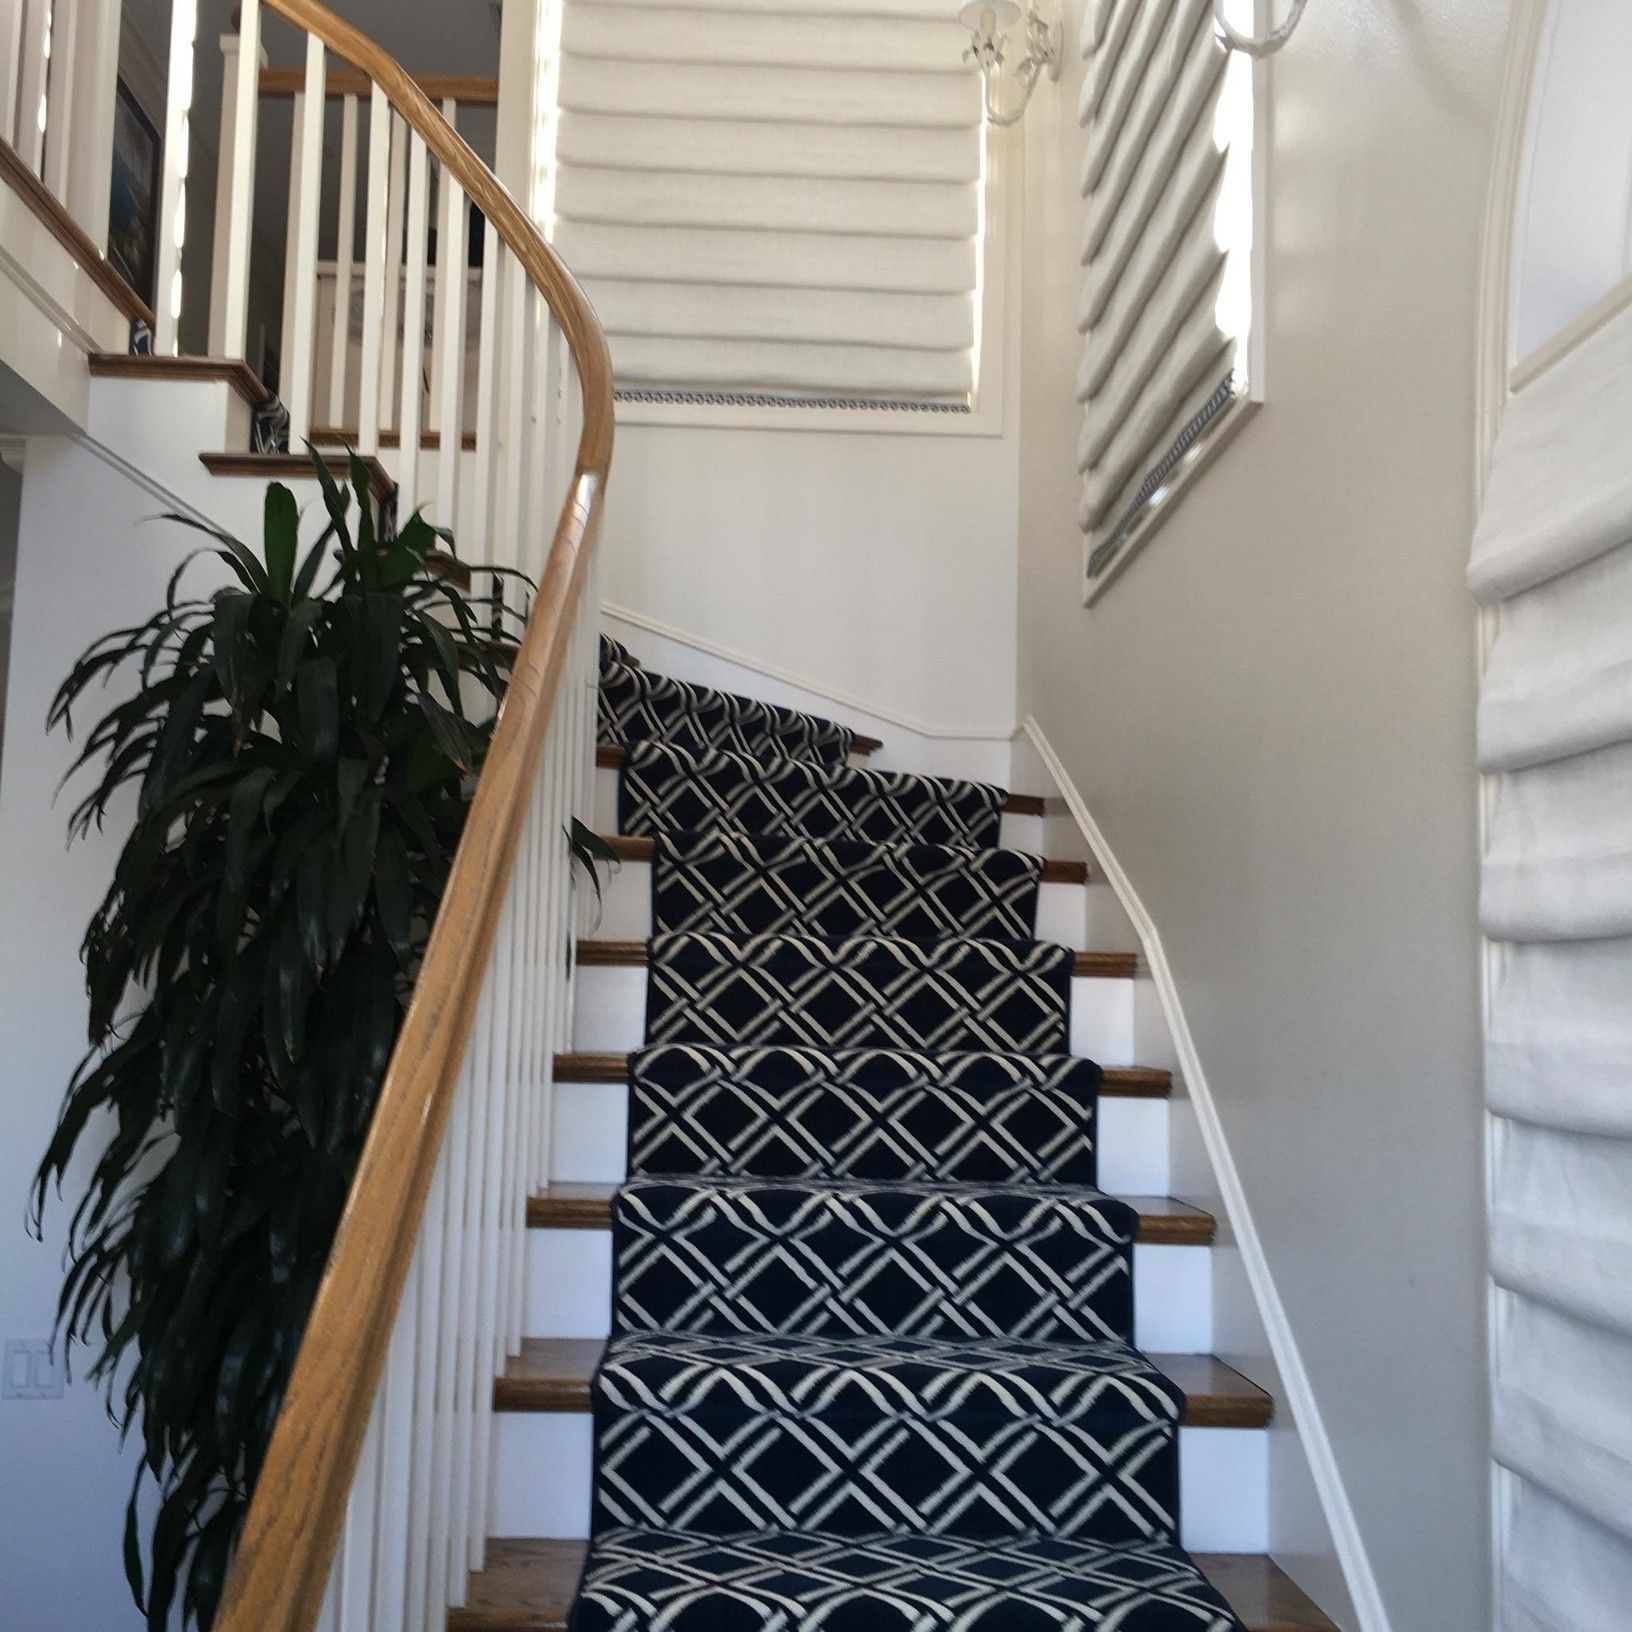 Replacing Carpet With A Stair Runner: Nourison Sparta Stair Runner